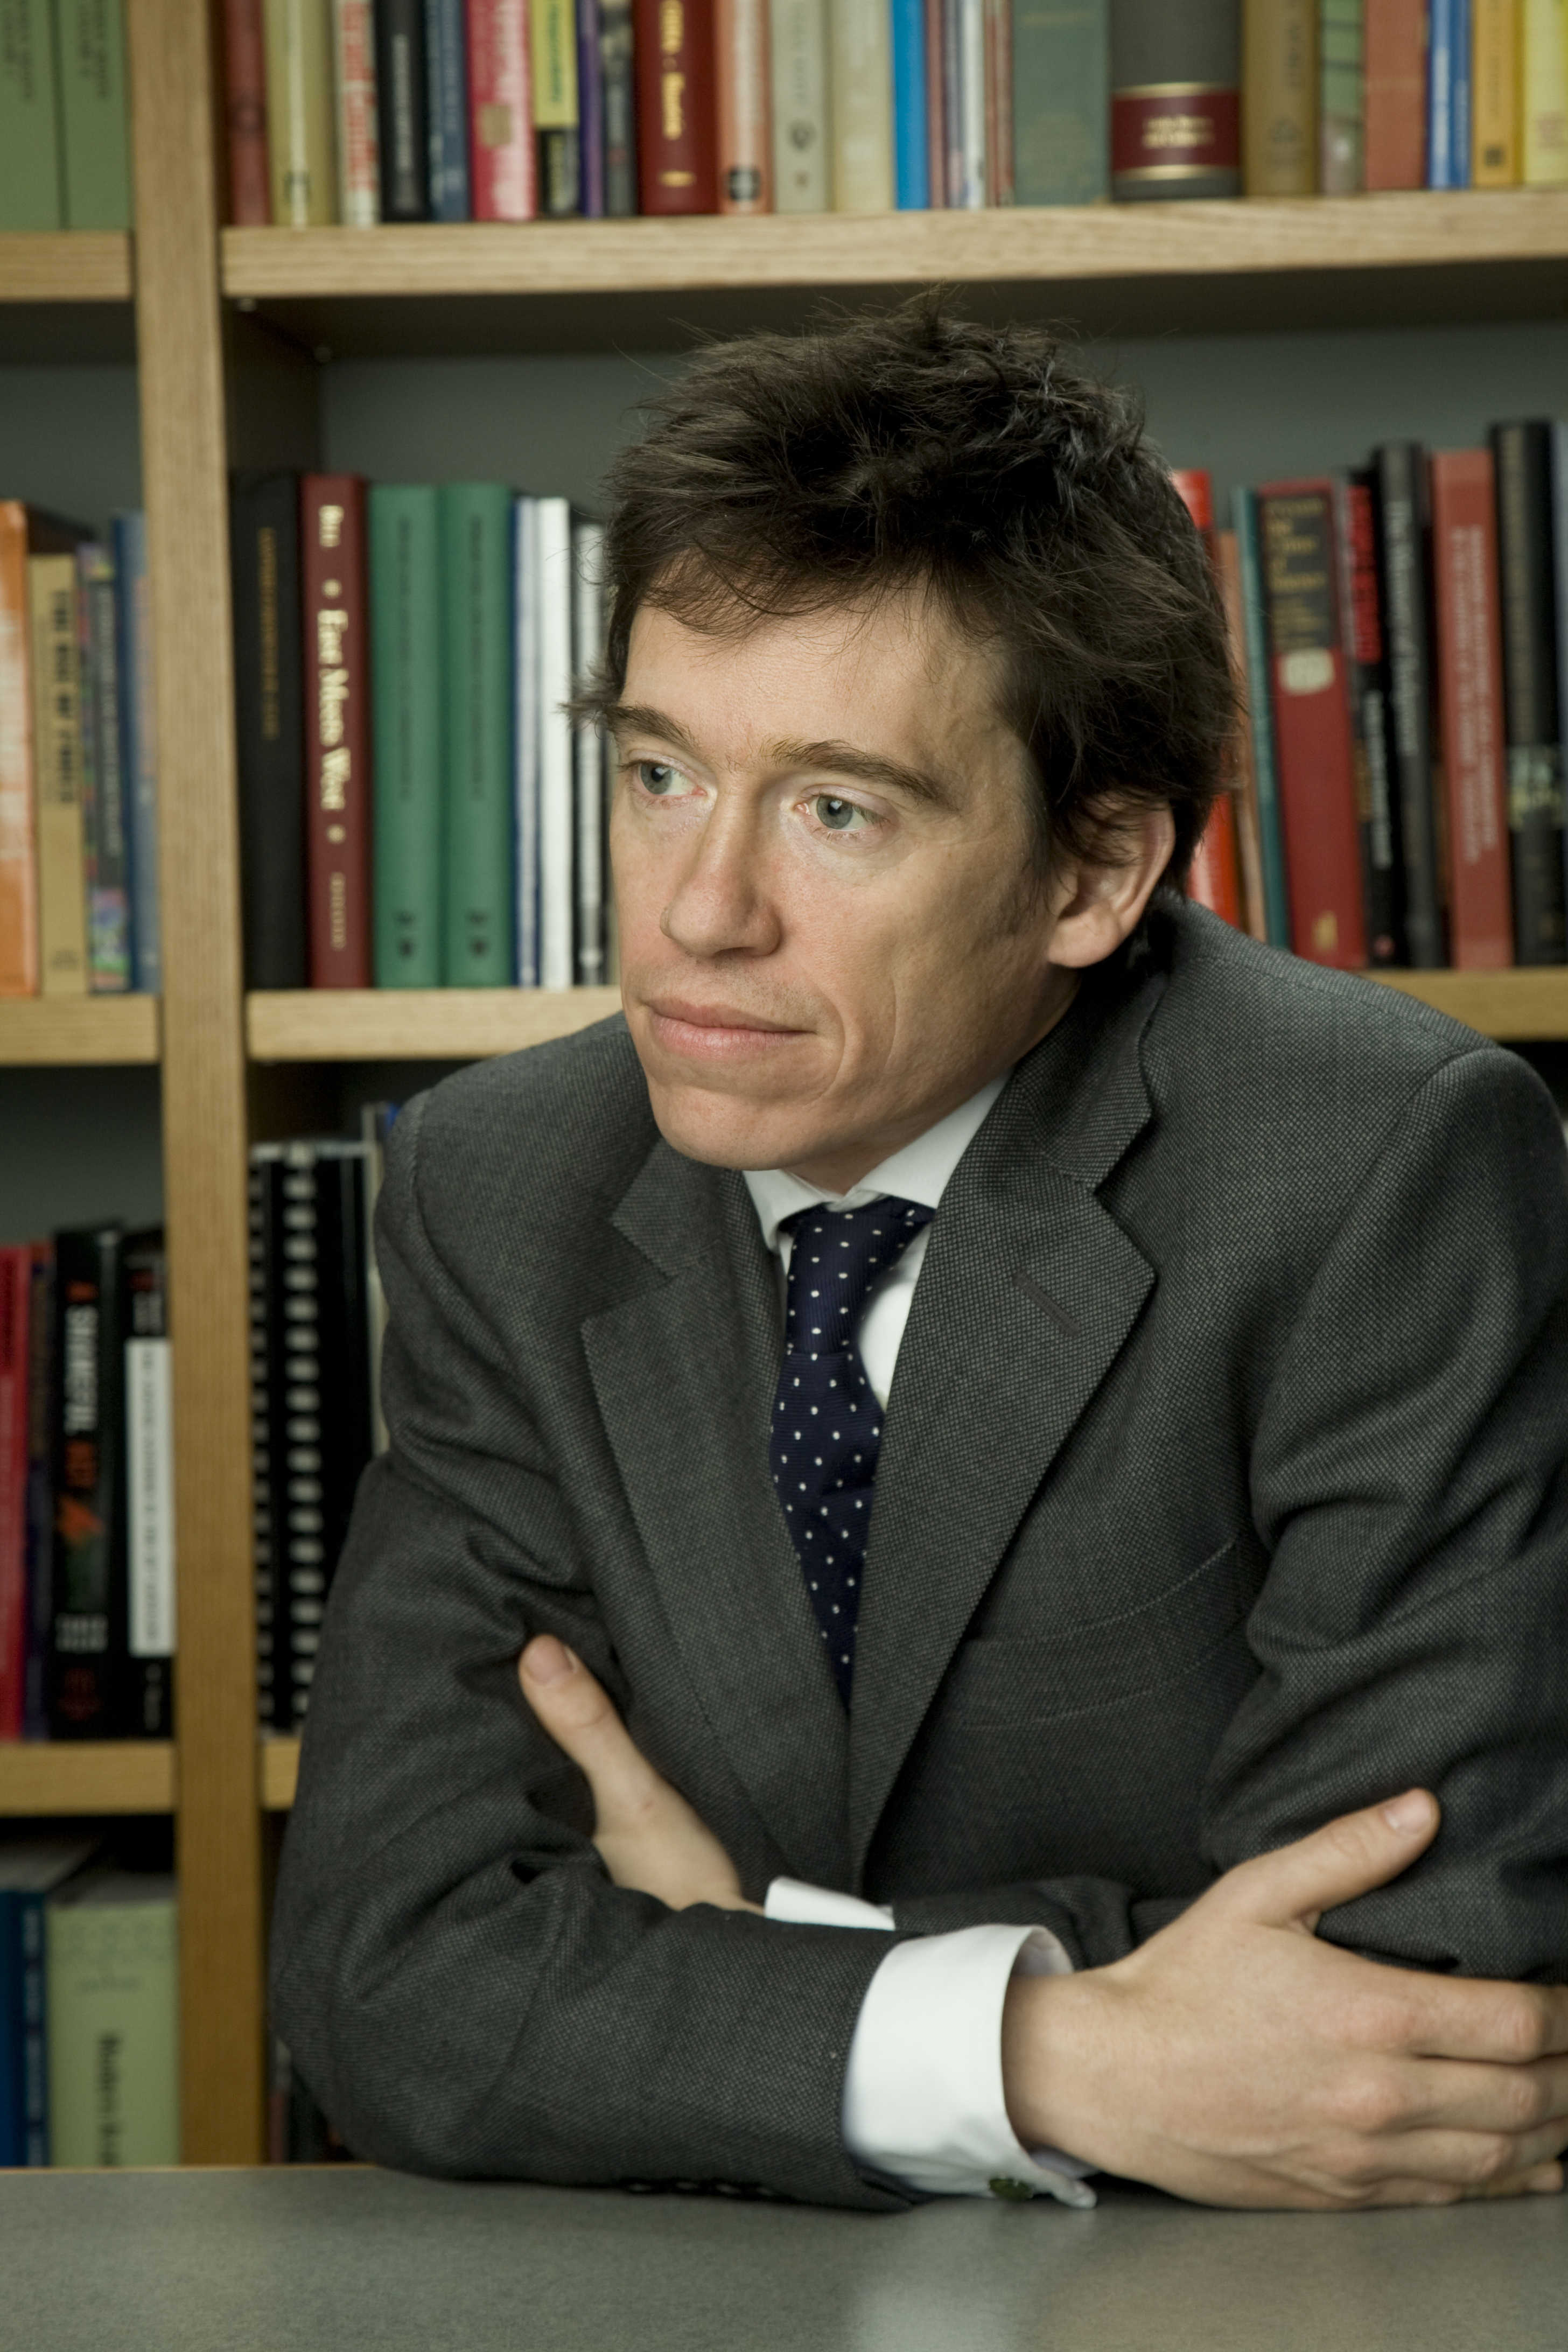 Image to accompany The Williamson Lecture - Dr Rory Stewart OBE MP event